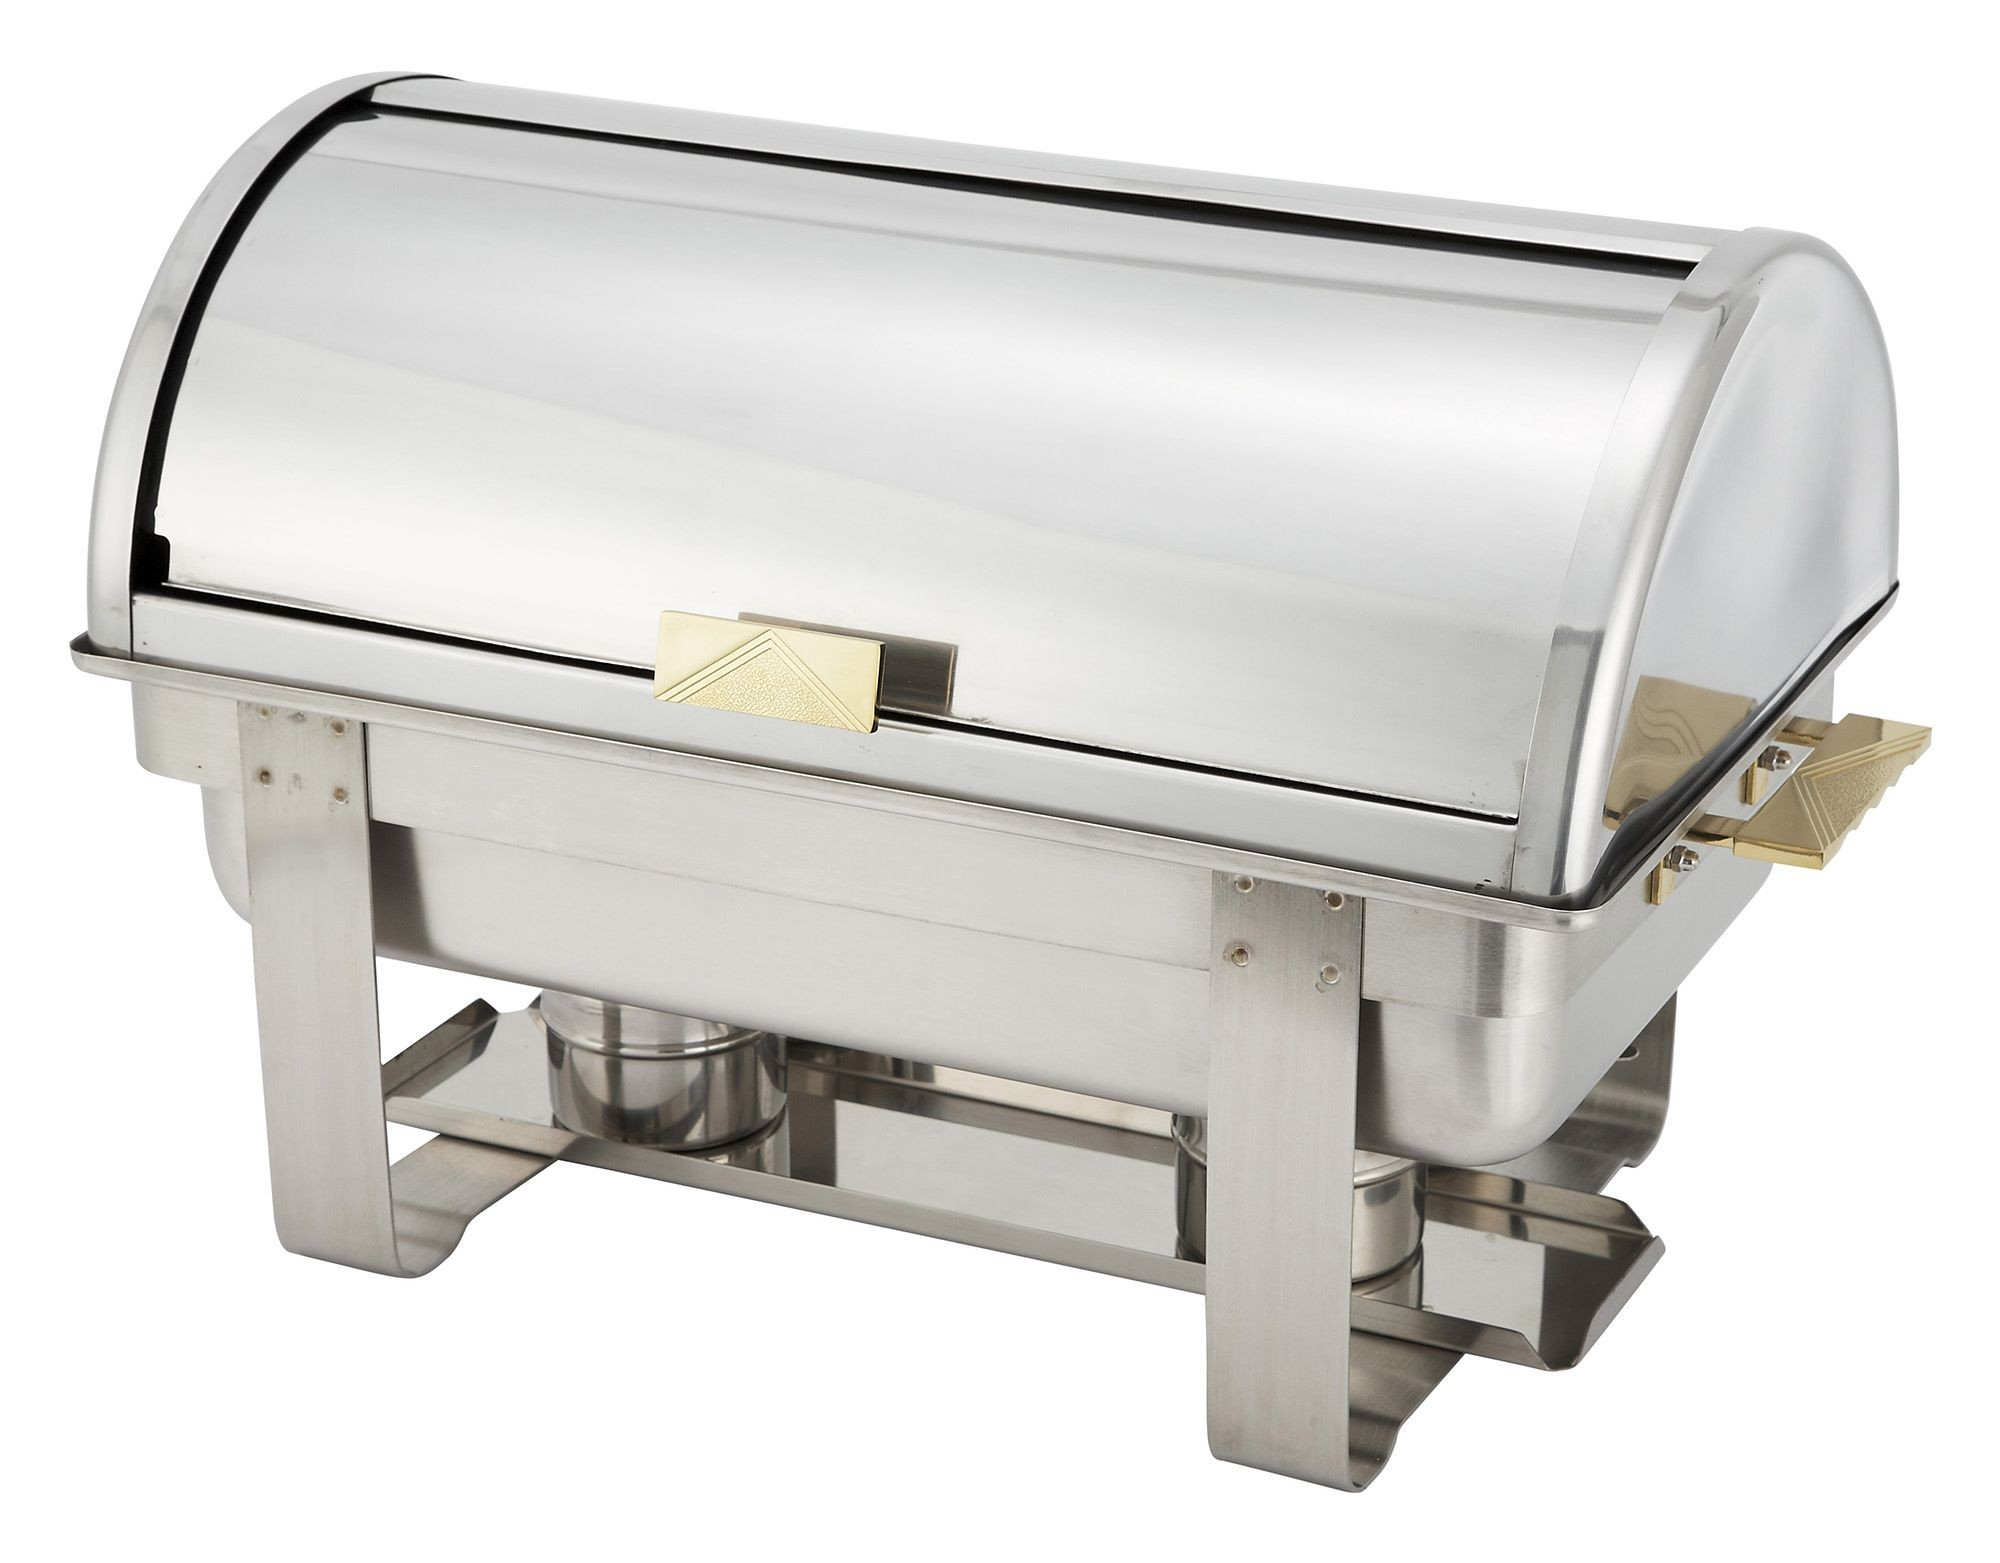 Winco C-5080 Dallas Stainless Steel Roll Top Chafer with Gold Accents 8 Qt.